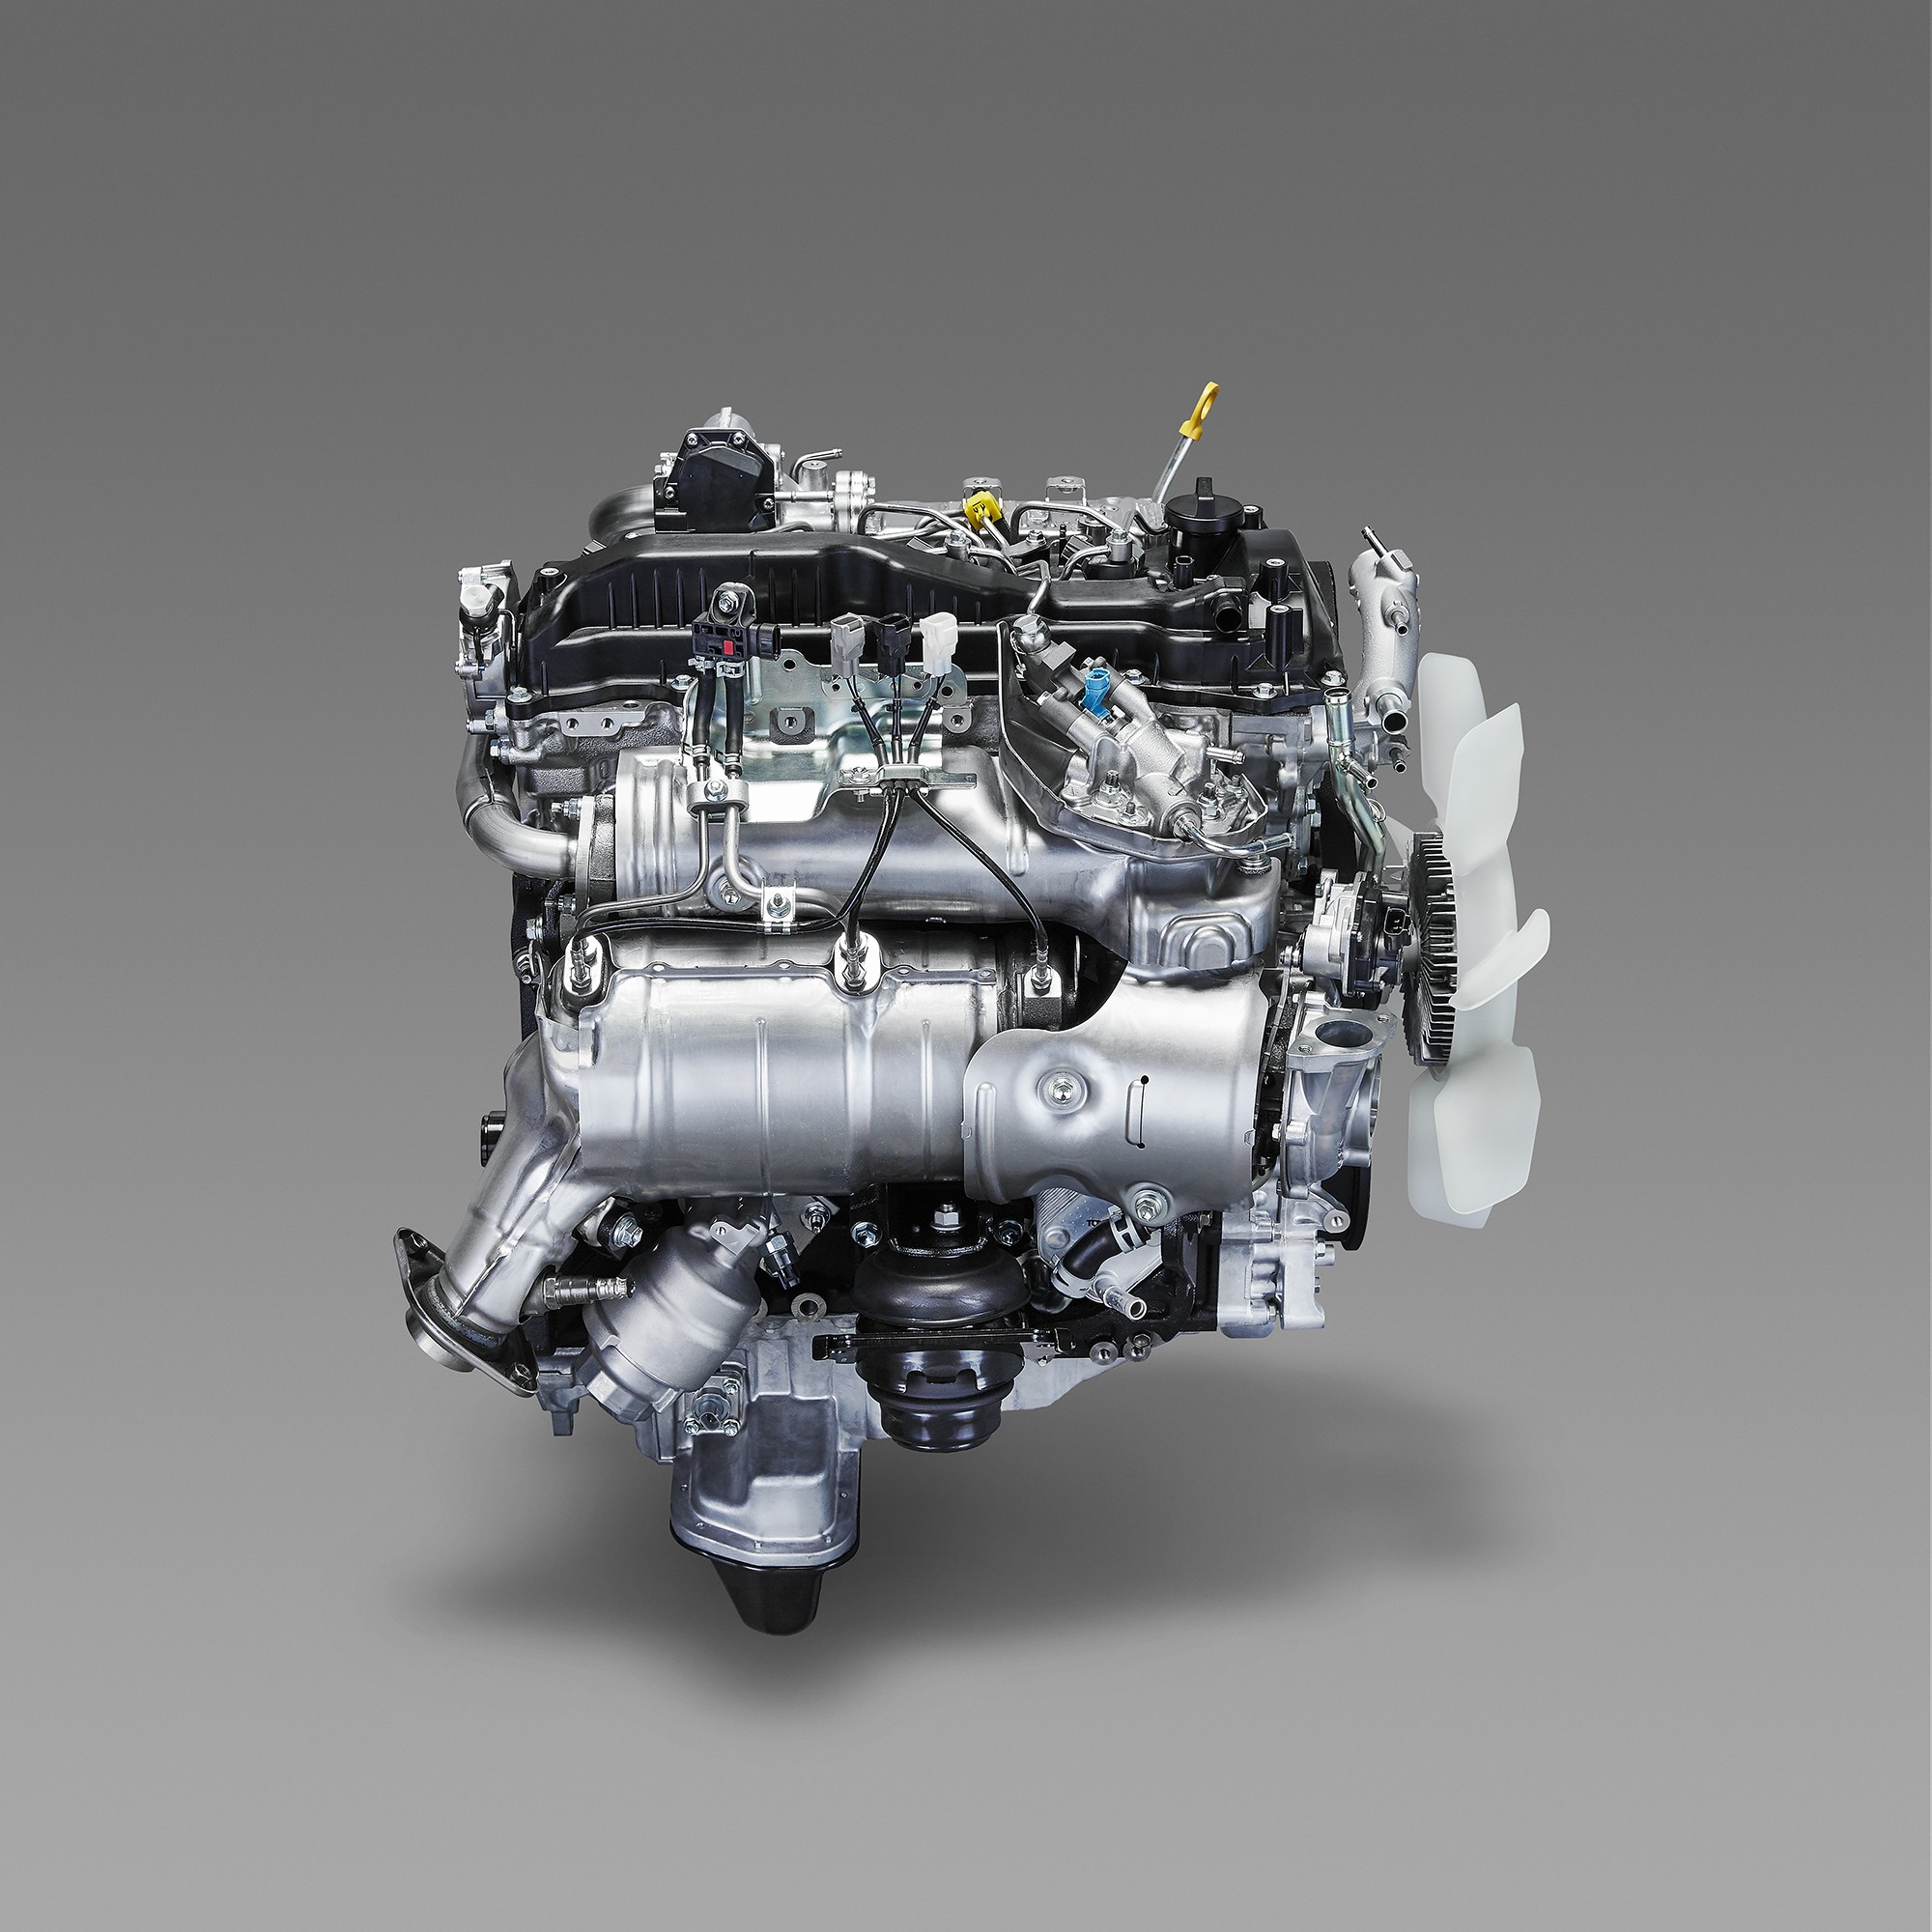 Toyota GD Turbo Diesel Family Boasts 44 Percent Maximum